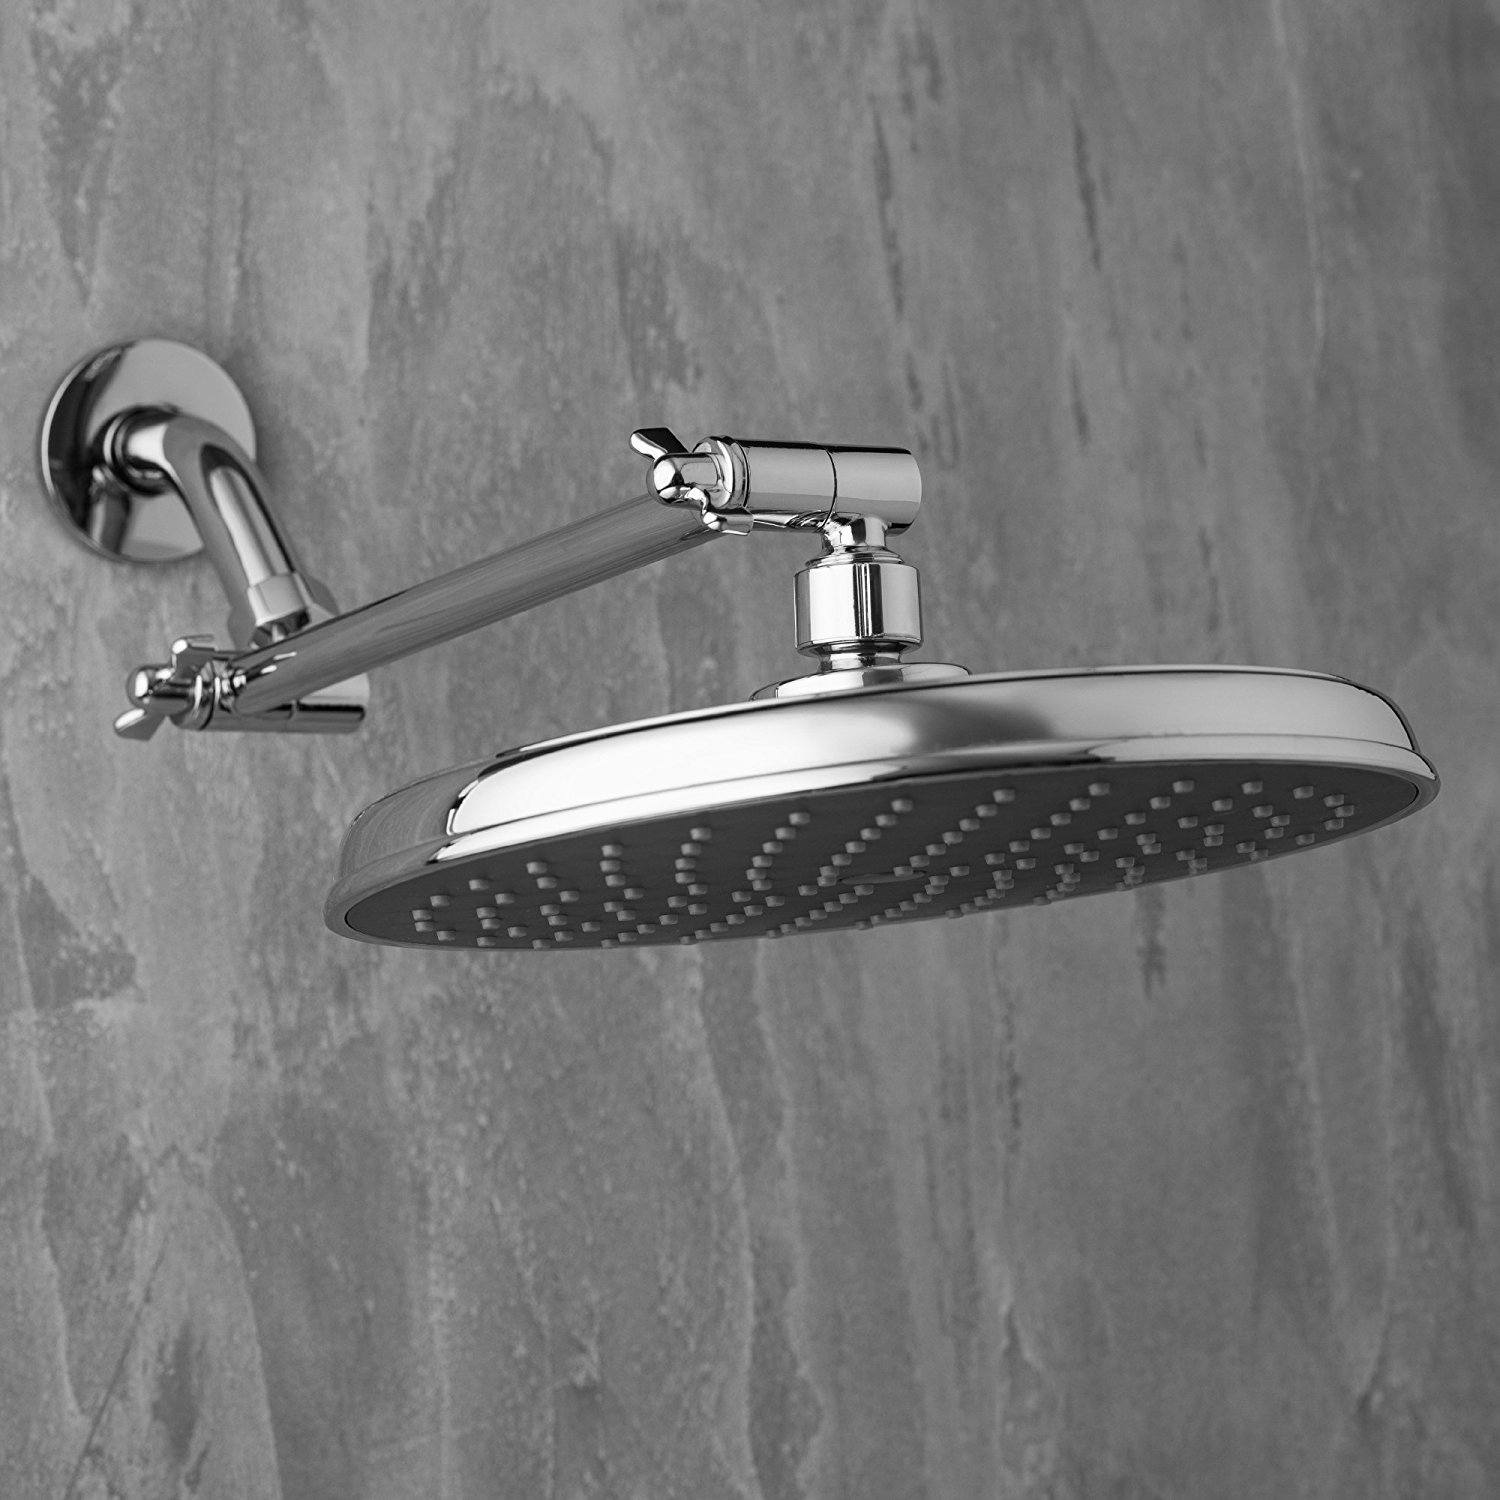 Best Shower Head Extension Arms New Tra Reviews 2019